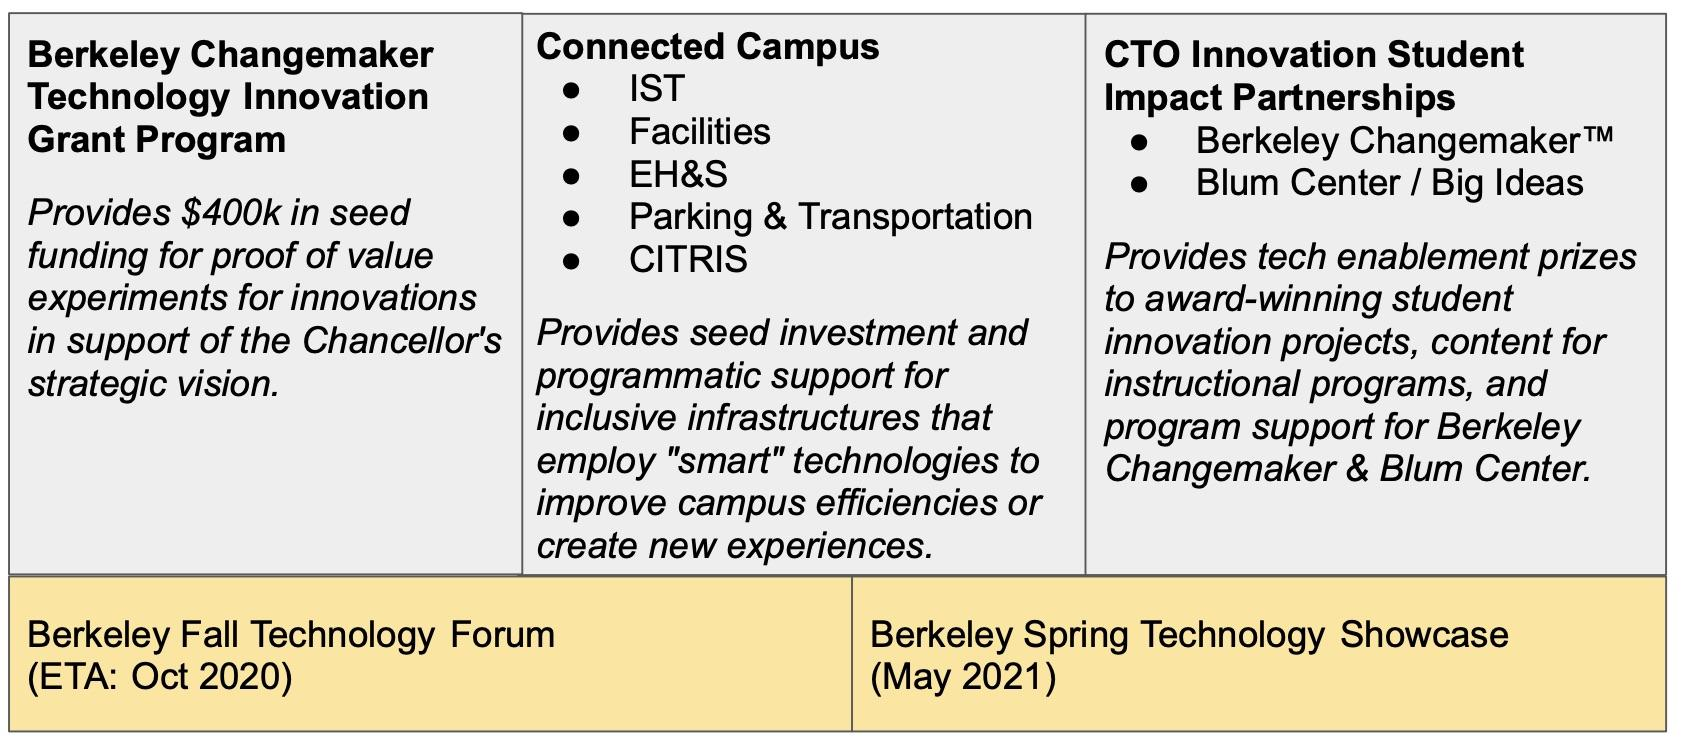 Berkeley Changemaker Technology Innovation Grants, Student Impact Partnerships and the Berkeley Connected Campus, and the two innovation forums.